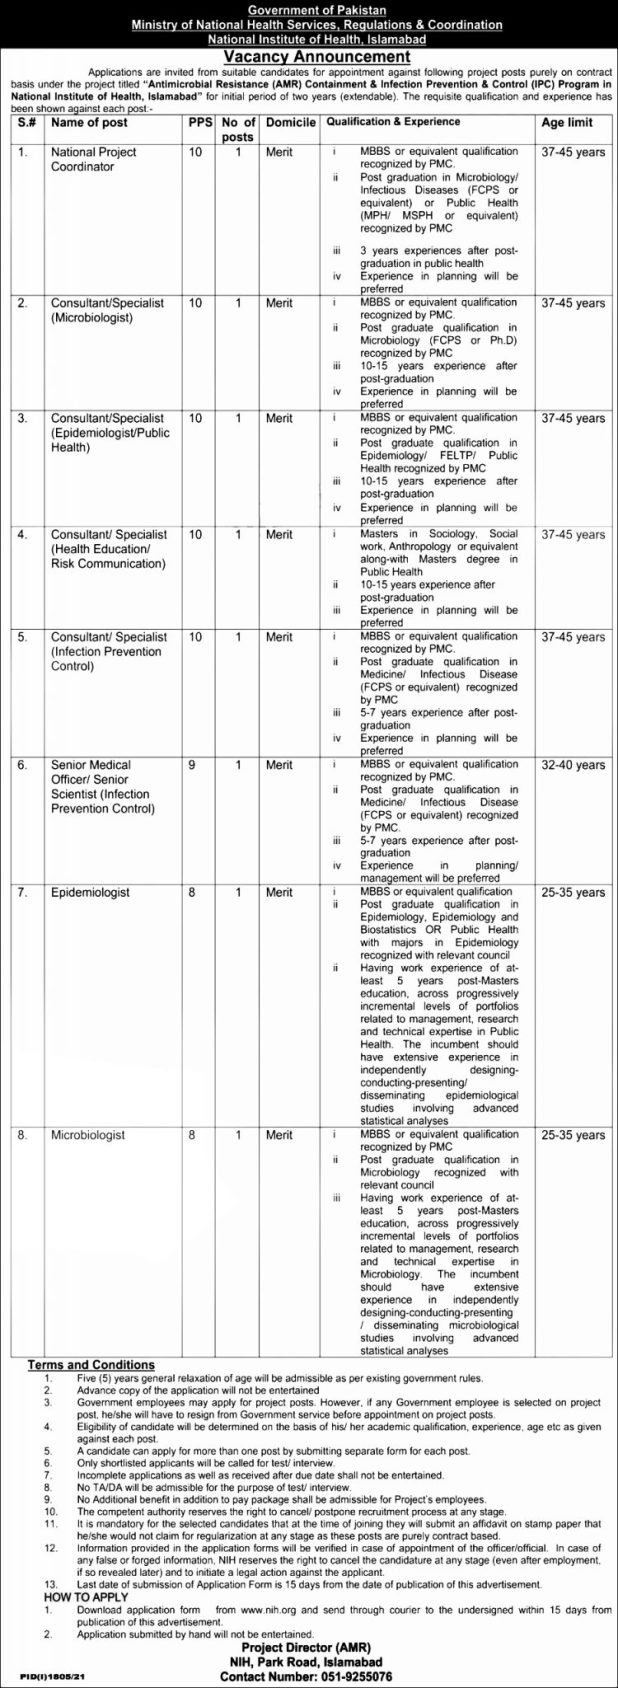 Ministry of National Health Services Jobs 2021 Application form Download Eligibility Criteria Dates